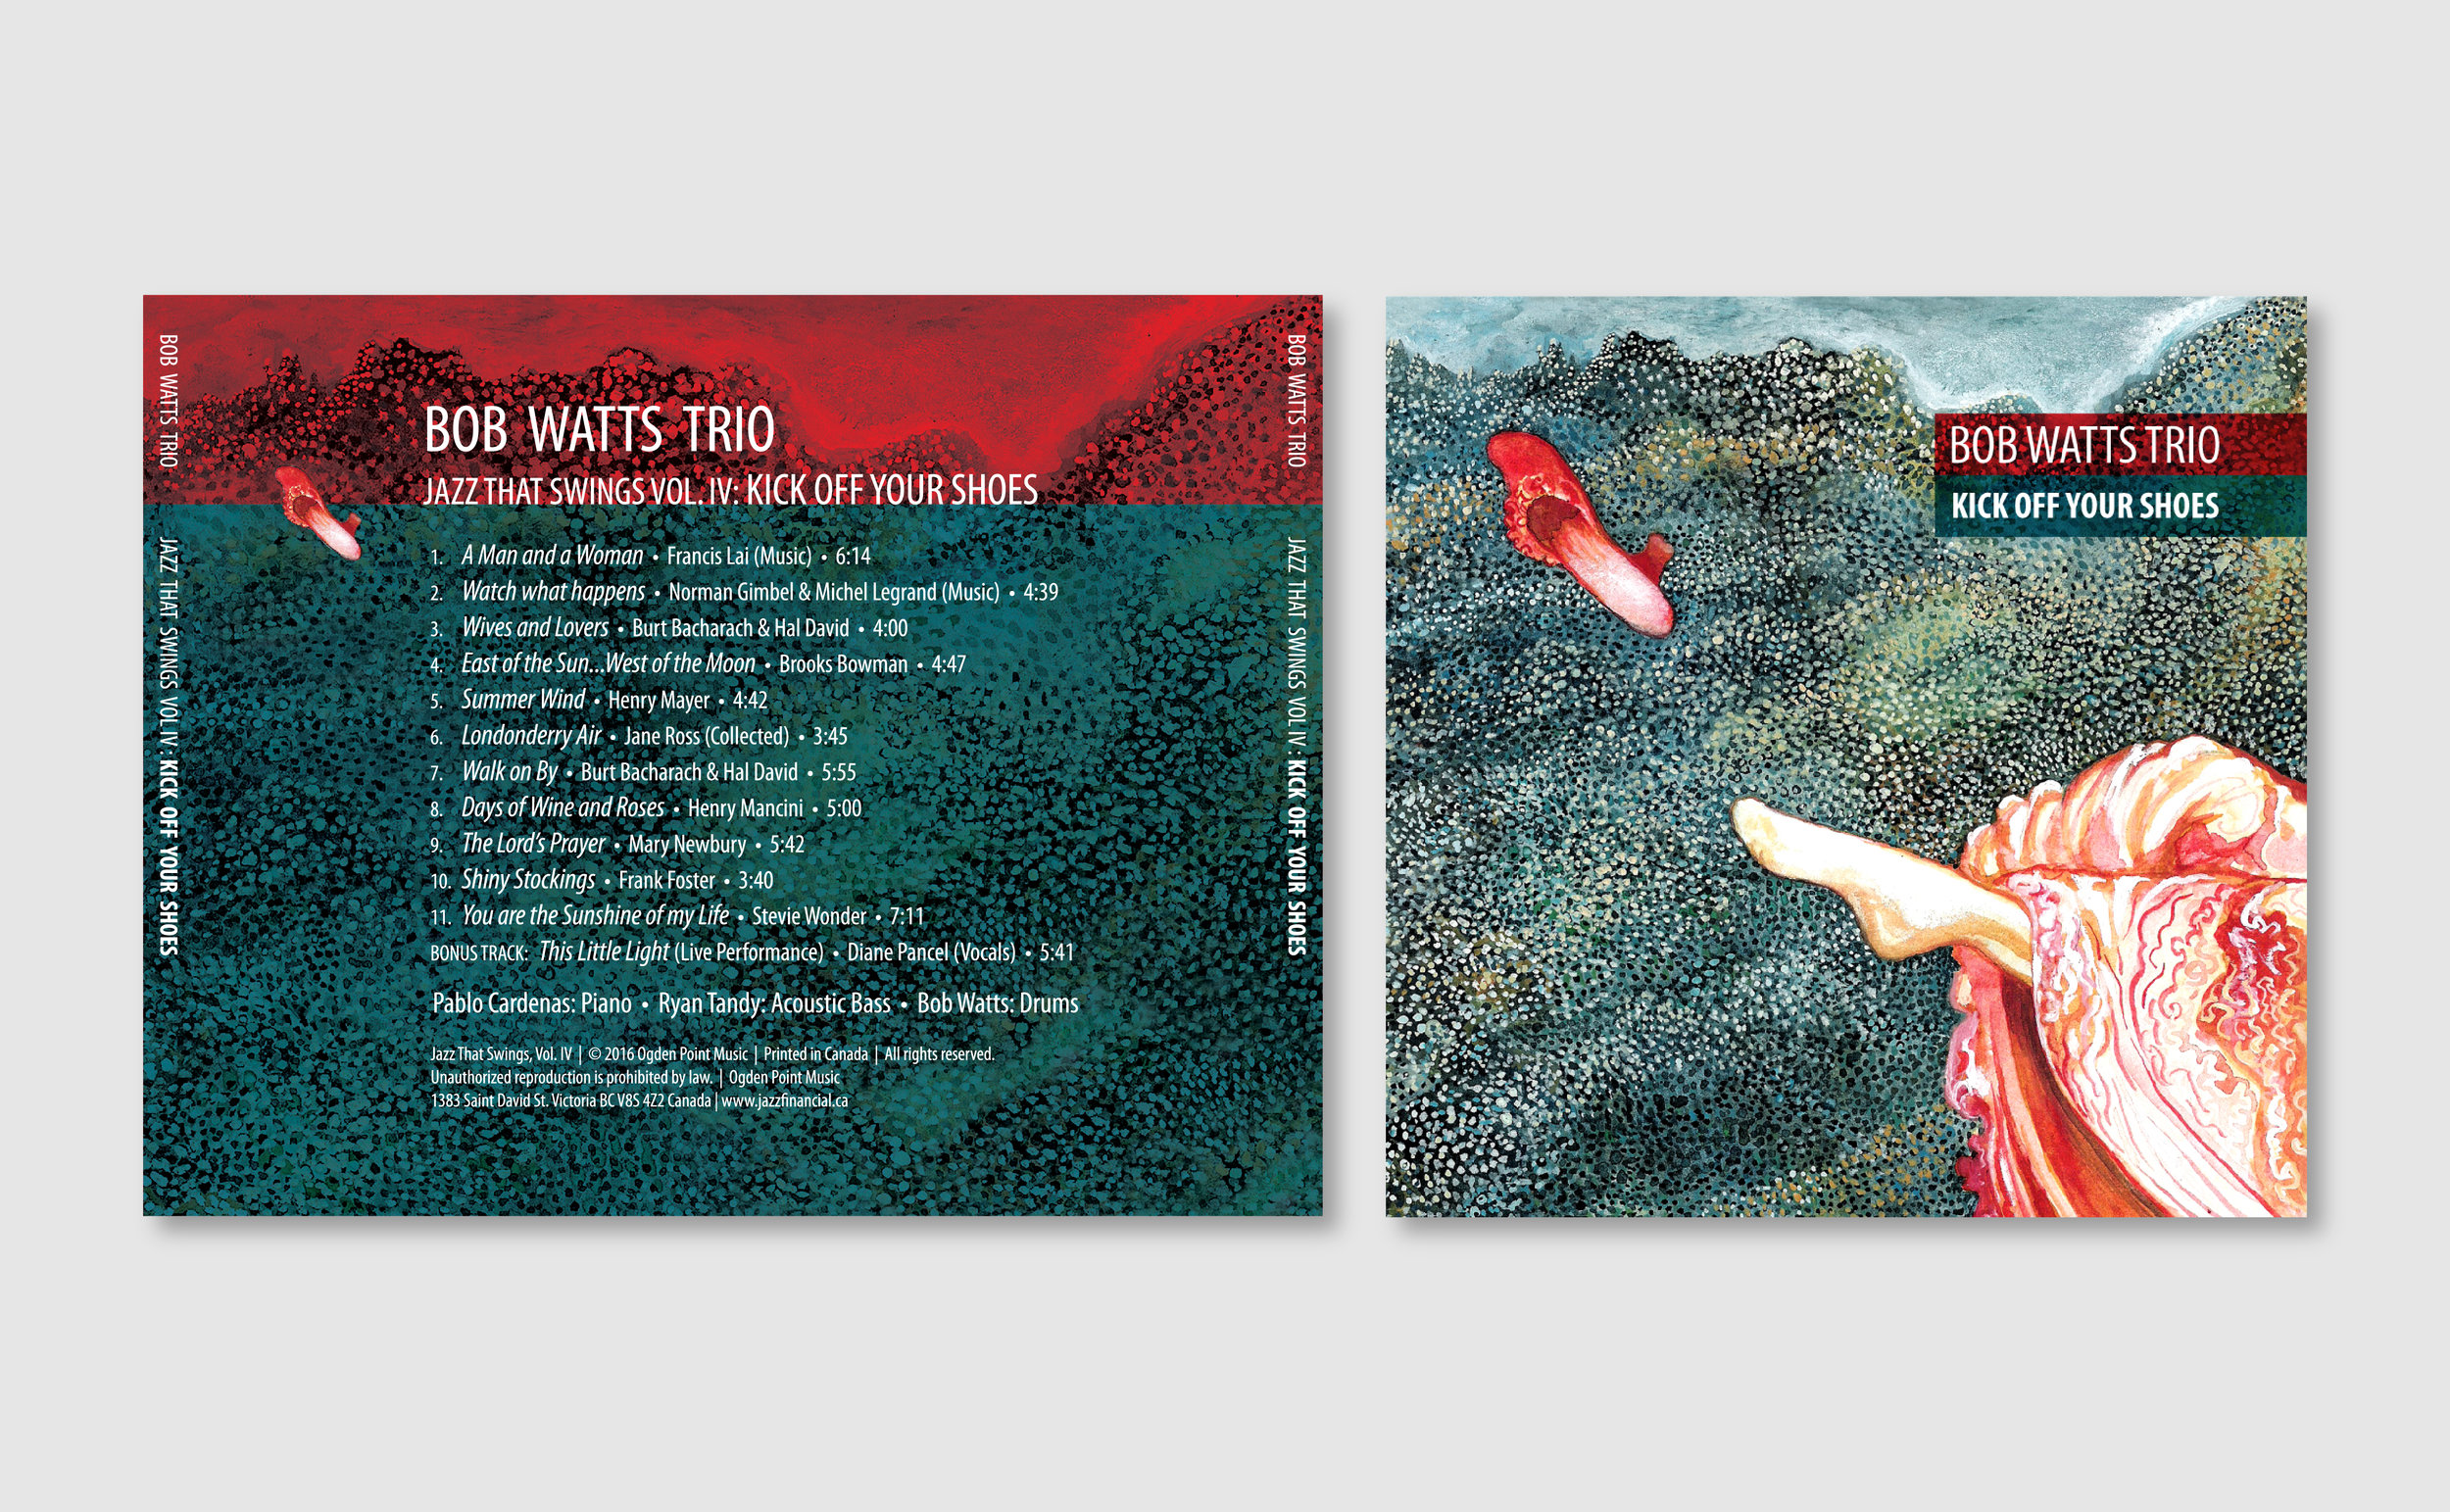 CD Cover and Back Cover